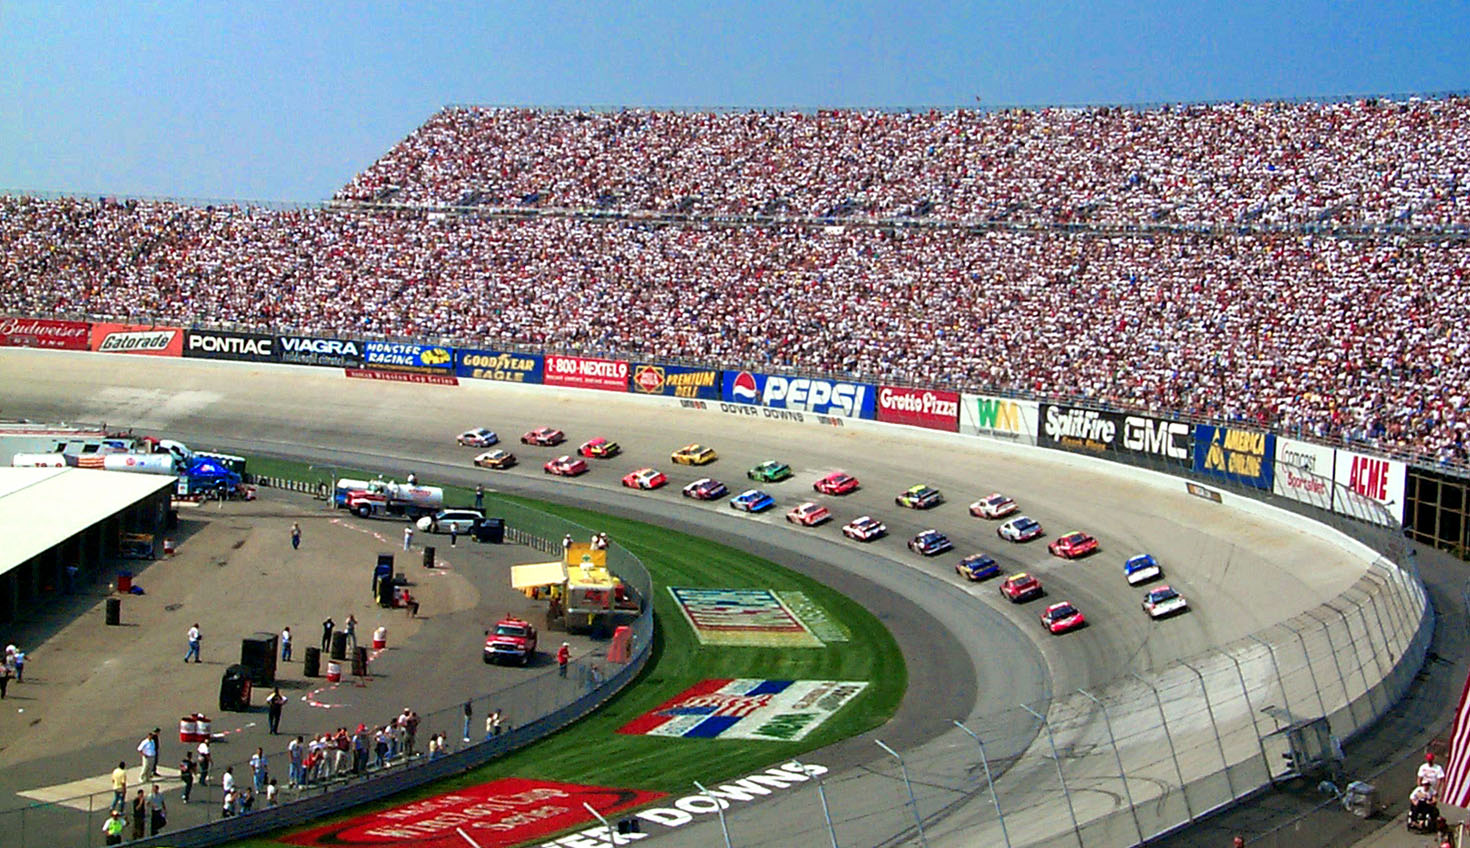 Dover international Speedway NASCAR Racing experience